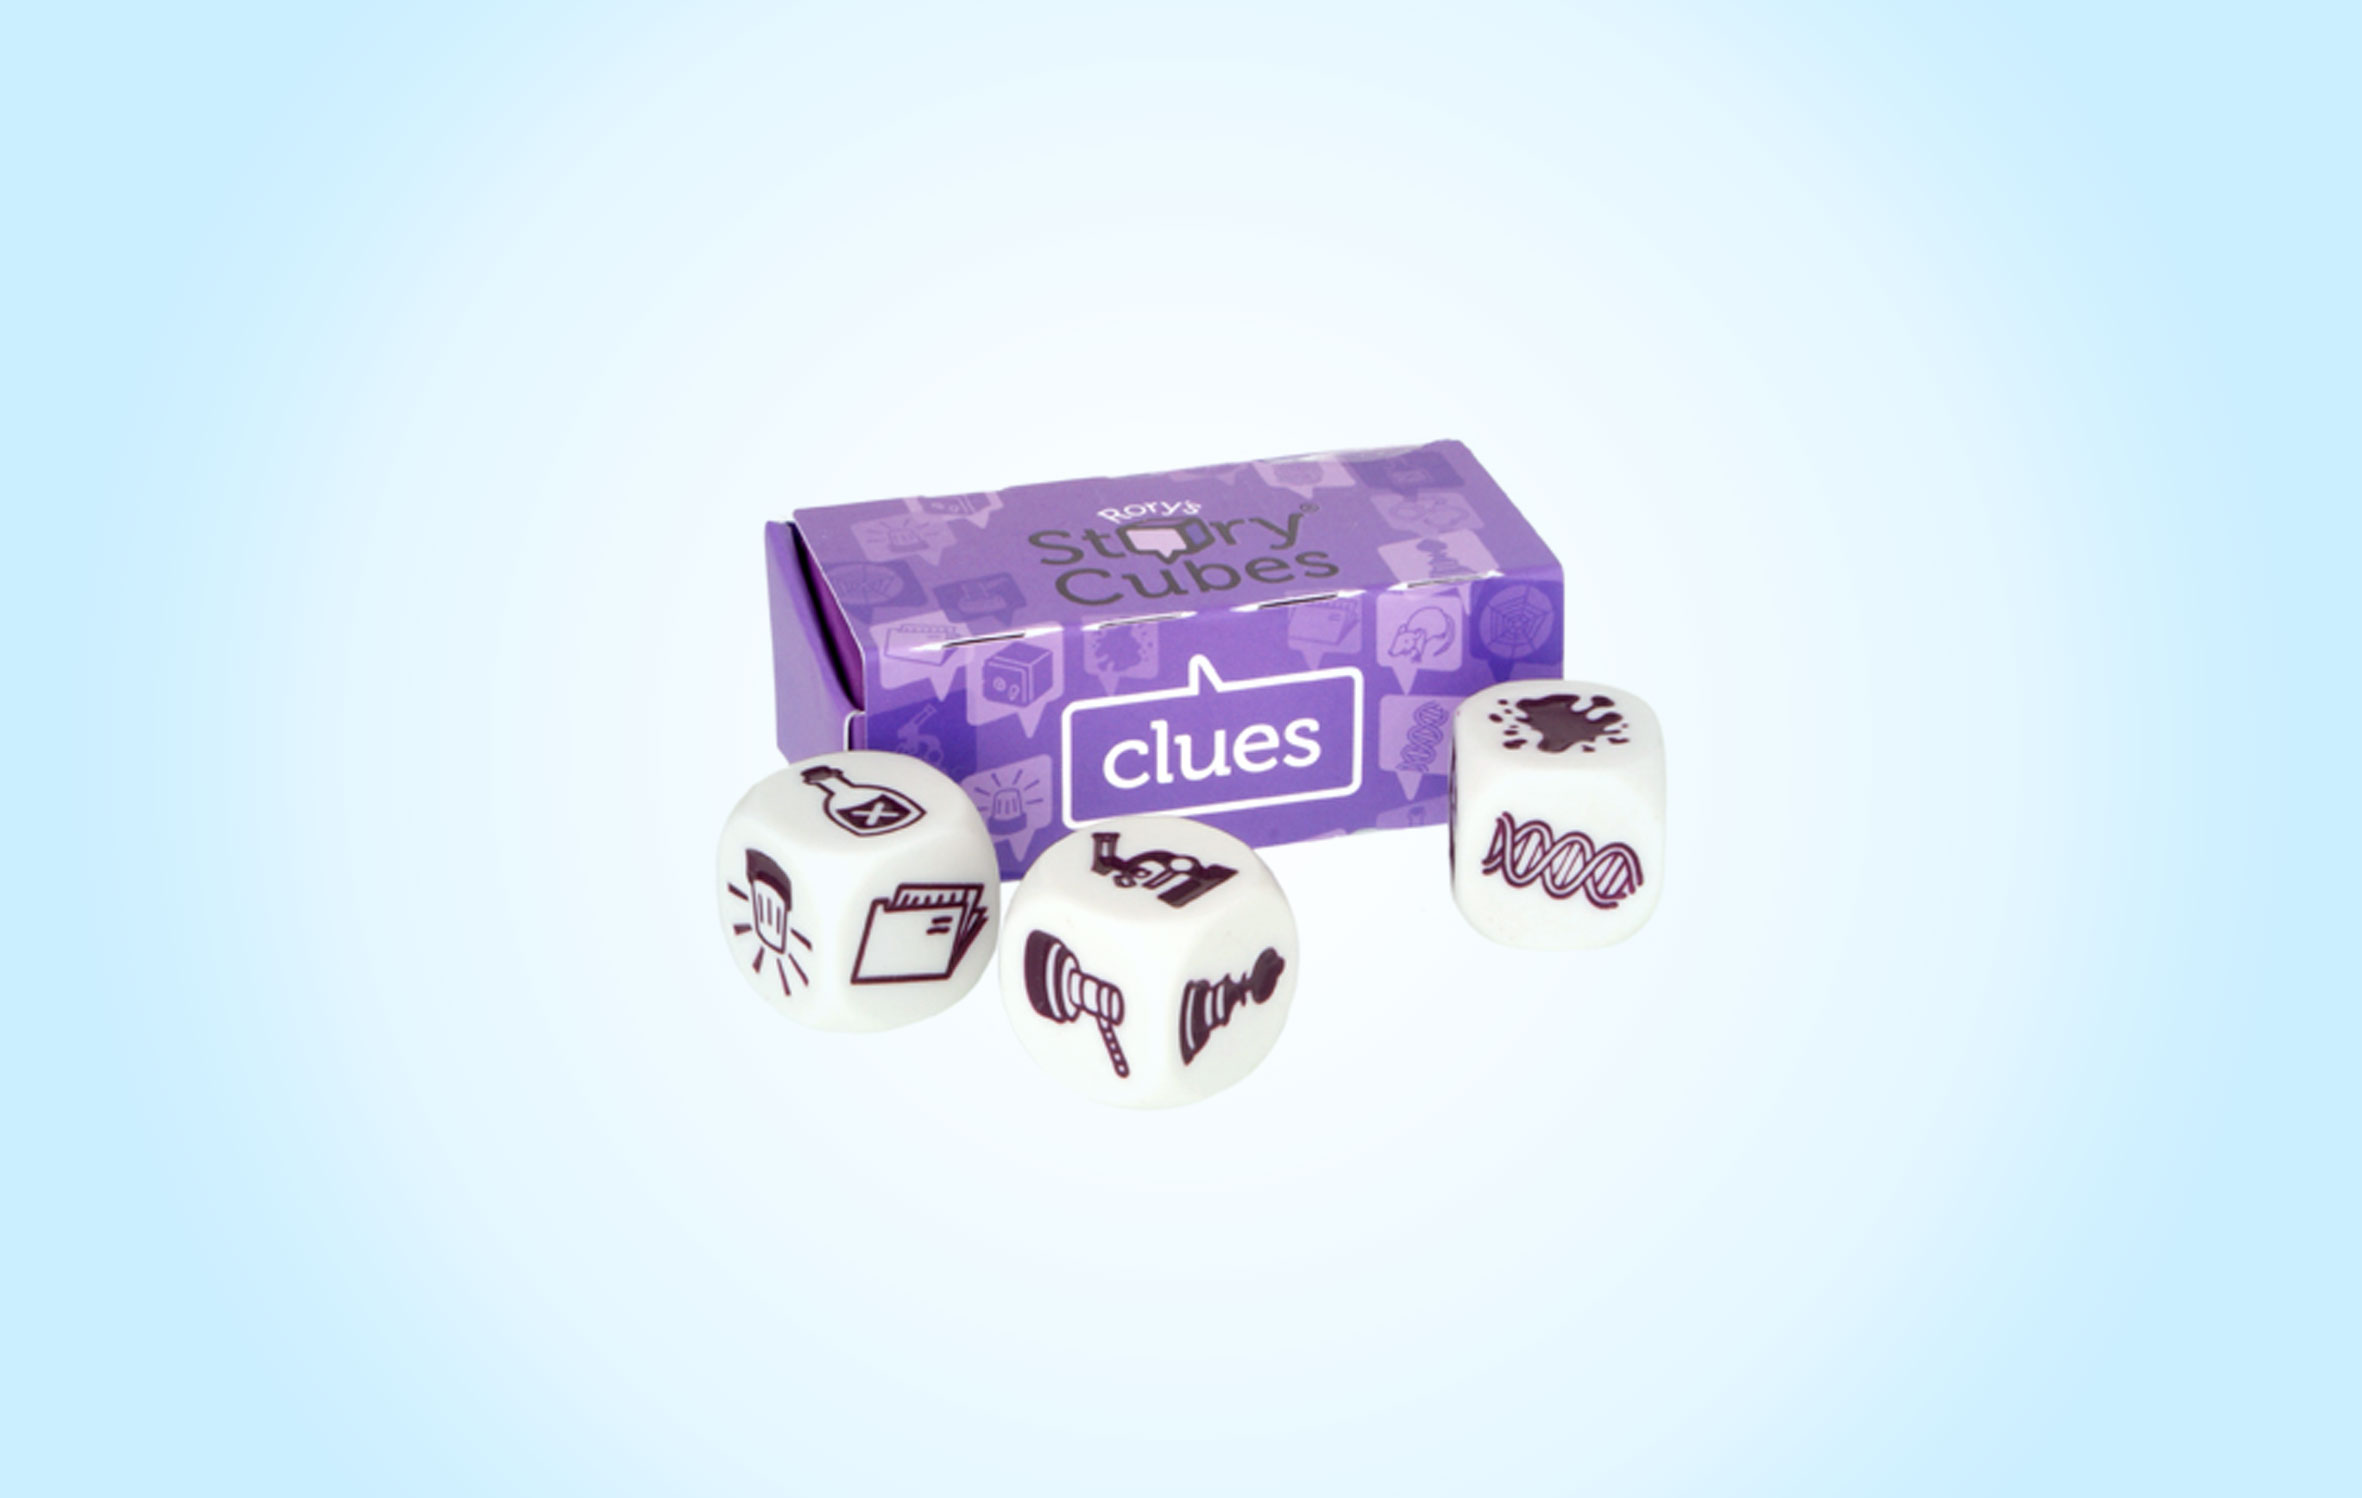 Story-cubes-Clues